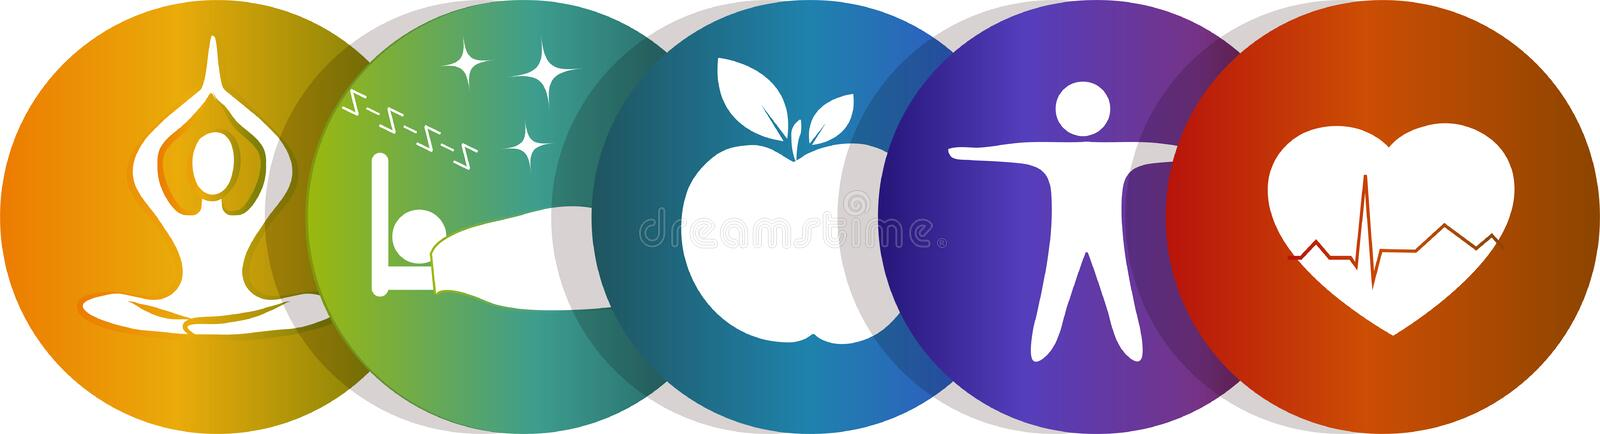 Health symbol rainbow stock illustration